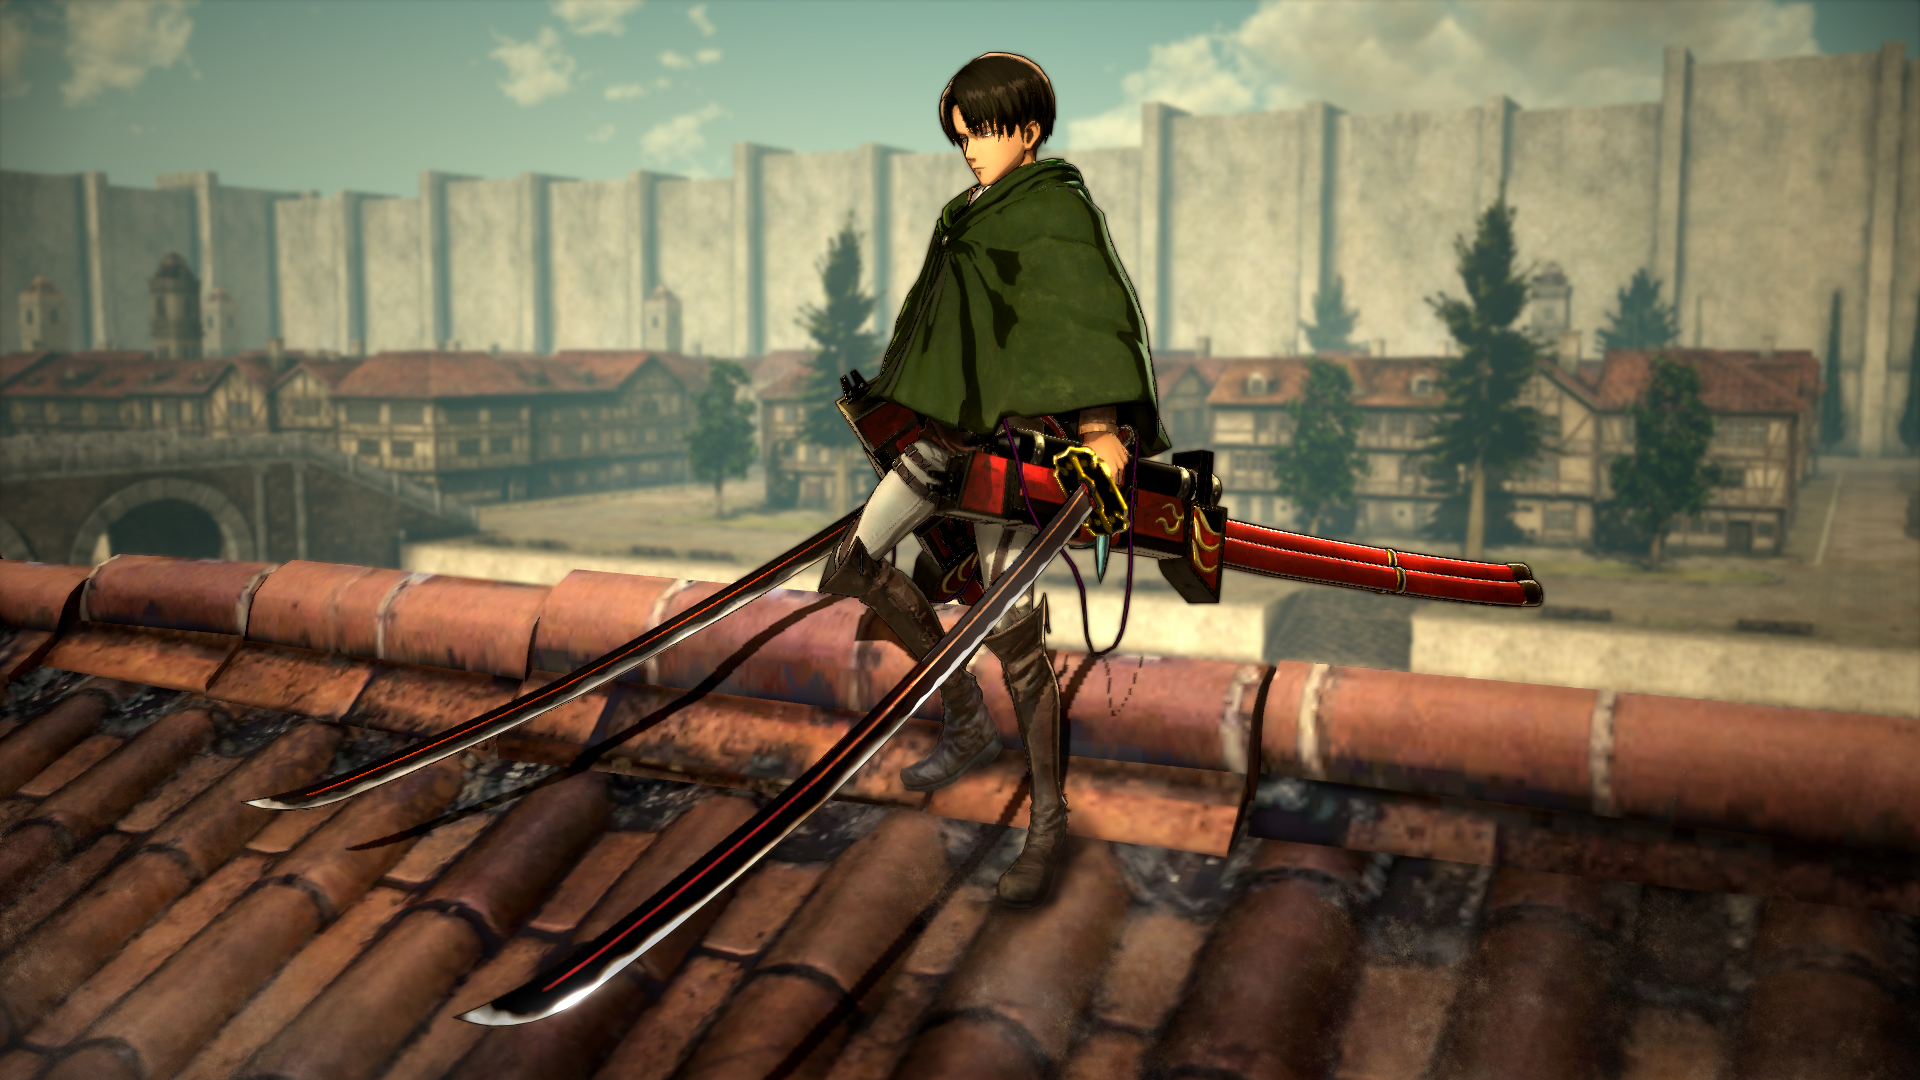 attack-on-titan-game-screenshot- (3)